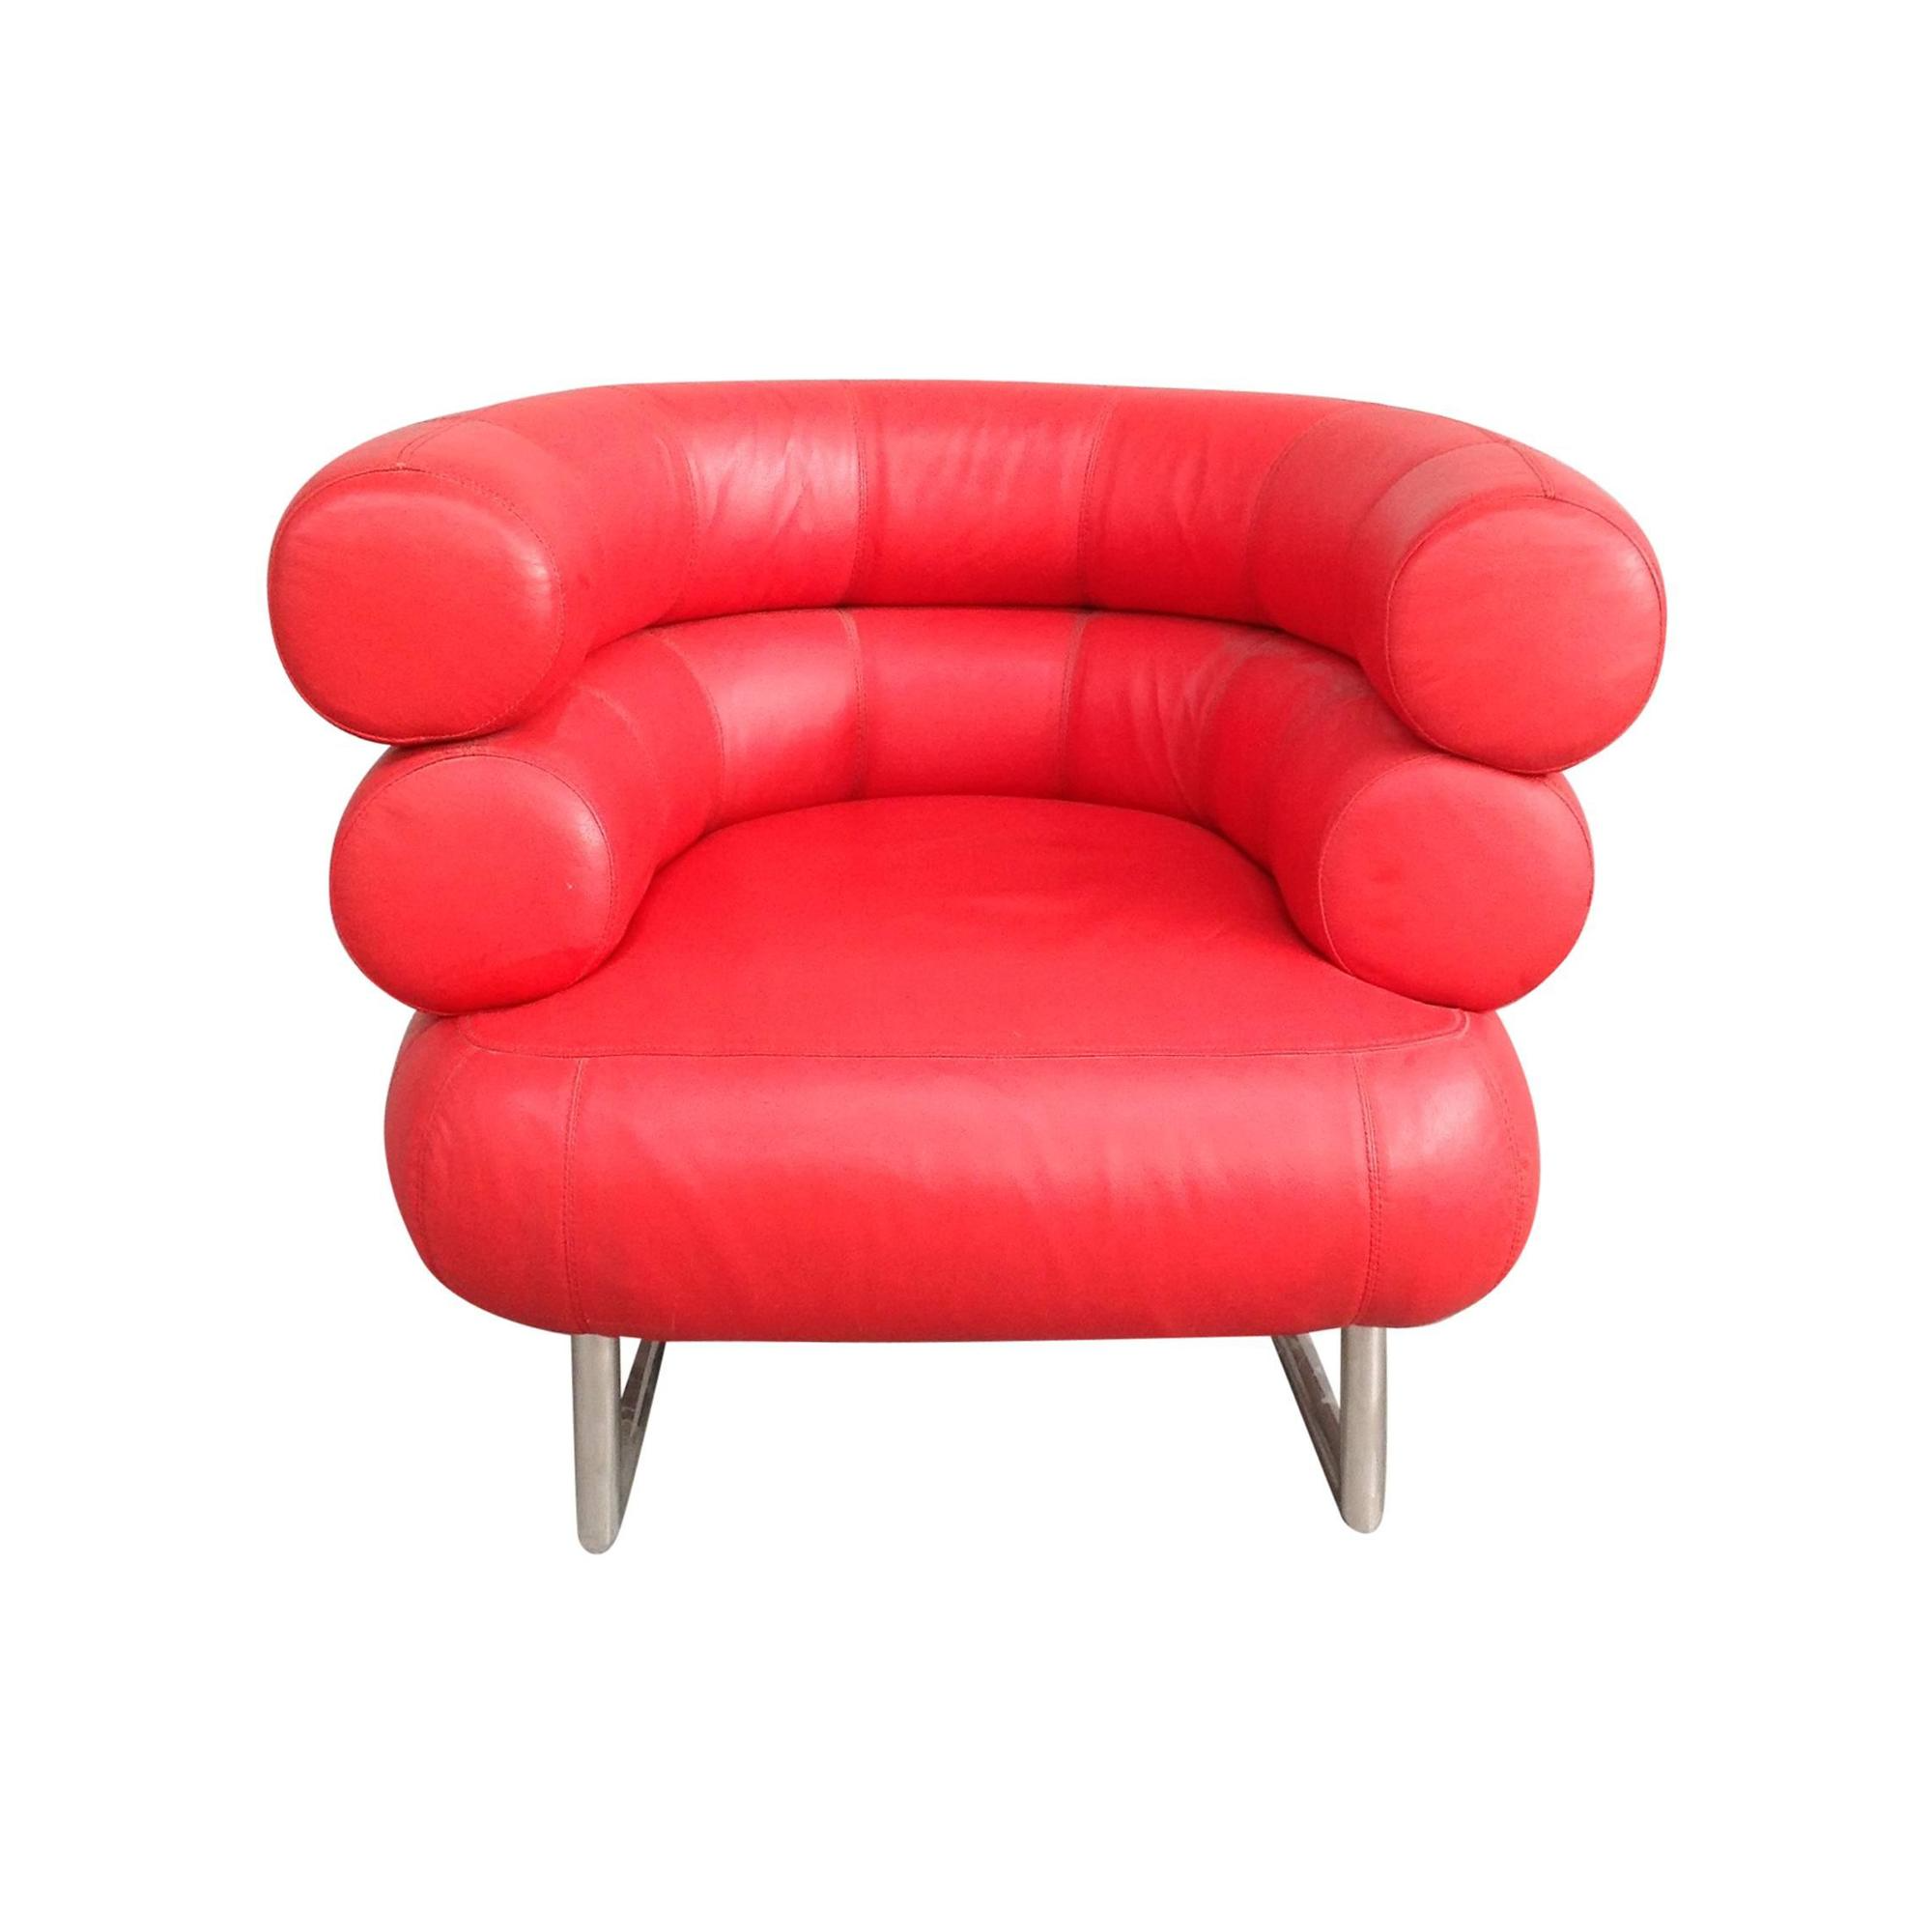 eileen gray furniture lighting chairs sofas more 21 for sale at 1stdibs. Black Bedroom Furniture Sets. Home Design Ideas